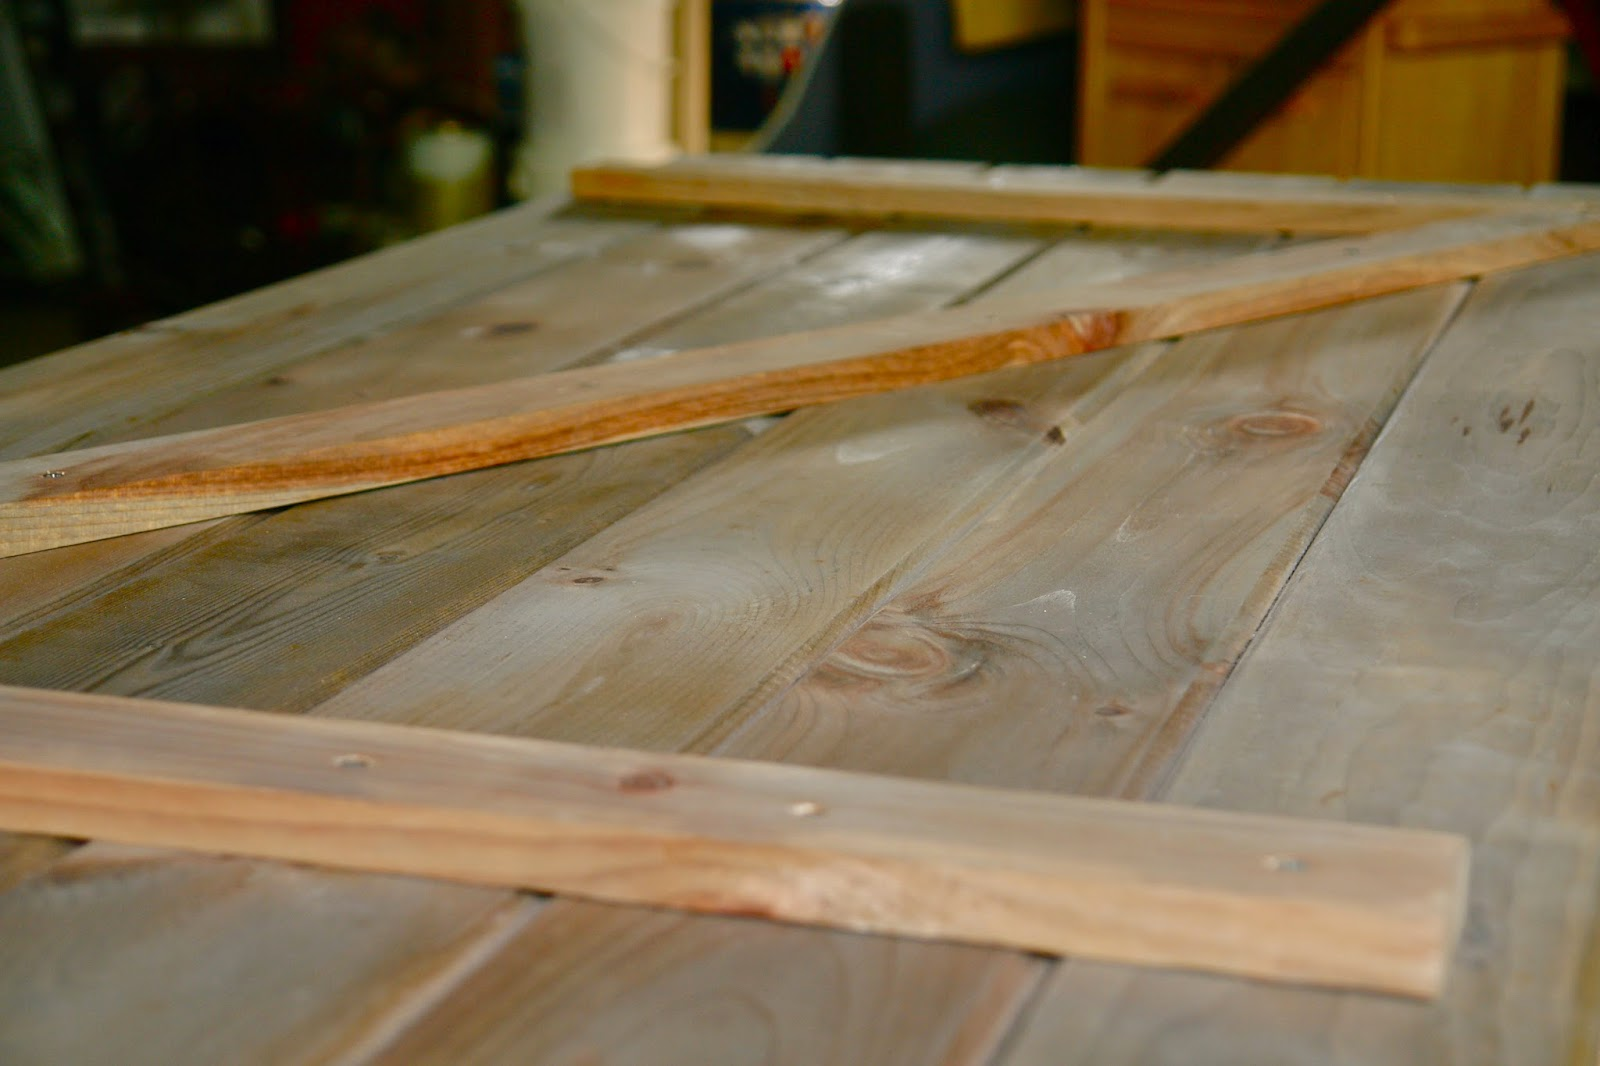 Hinged barn doors - Step 7 Attach Supporting Header Optional For Sliding Barn Door If You Are Doing A Hinged Door This Step Is Not Necessary This Will Be Where The Barn